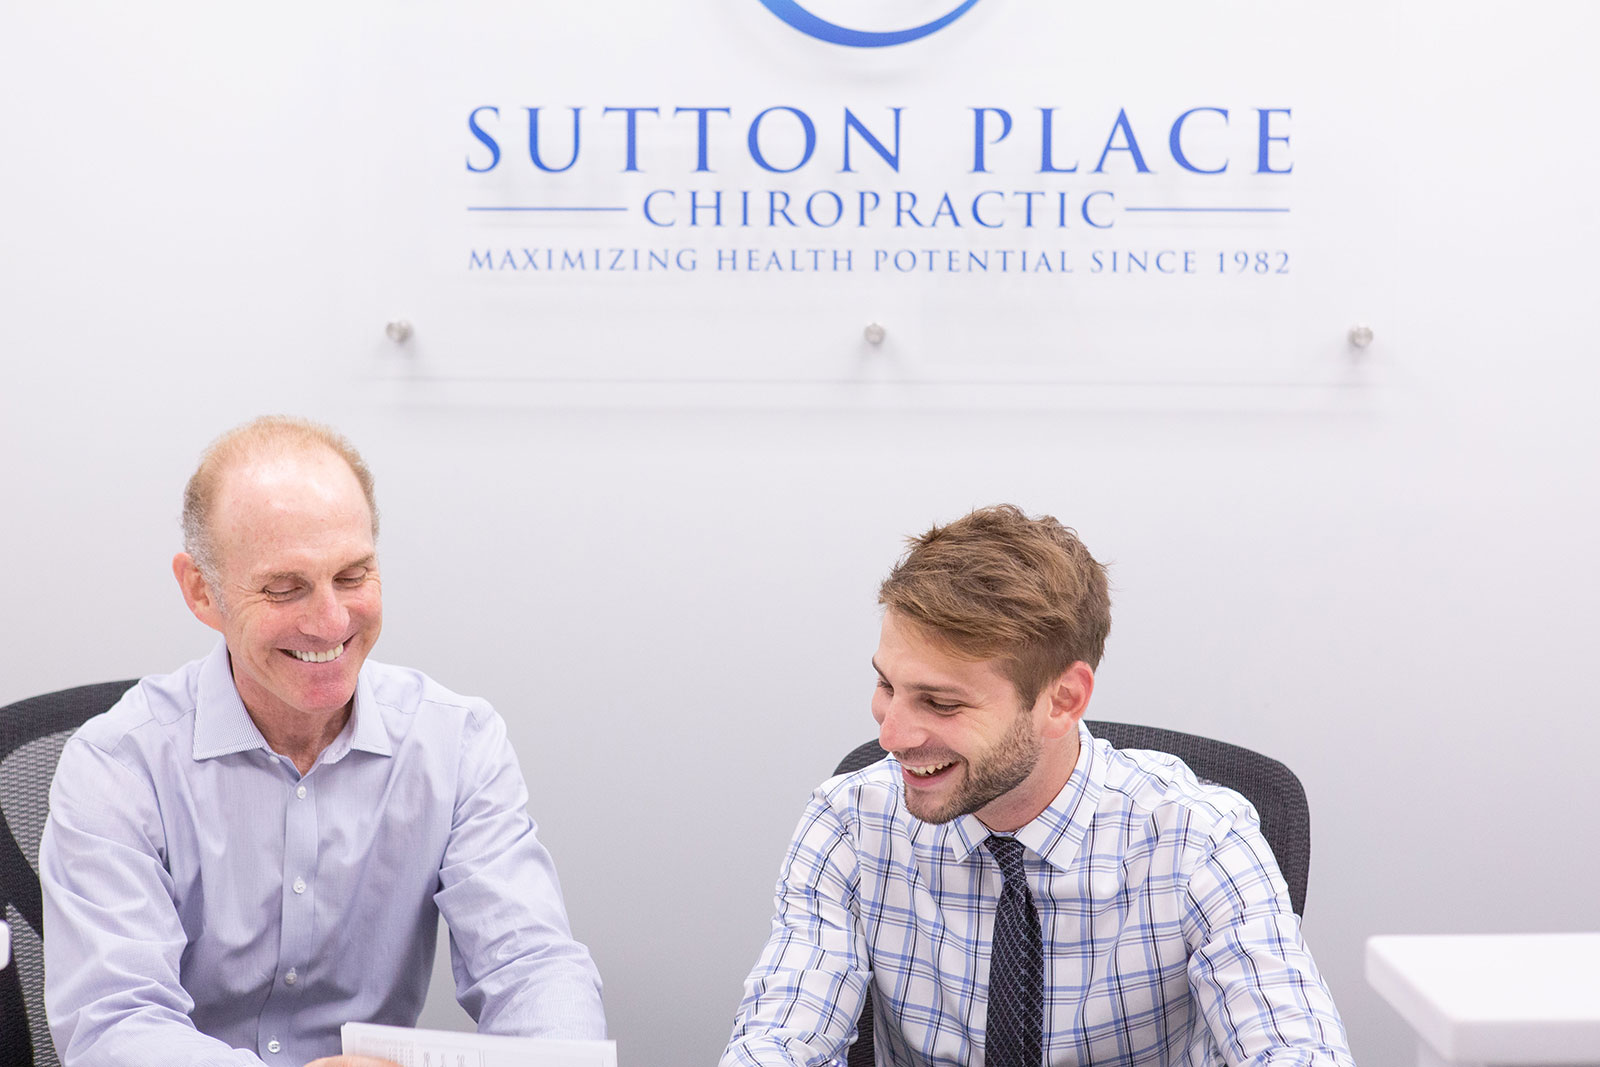 Sutton Place Chiropractic